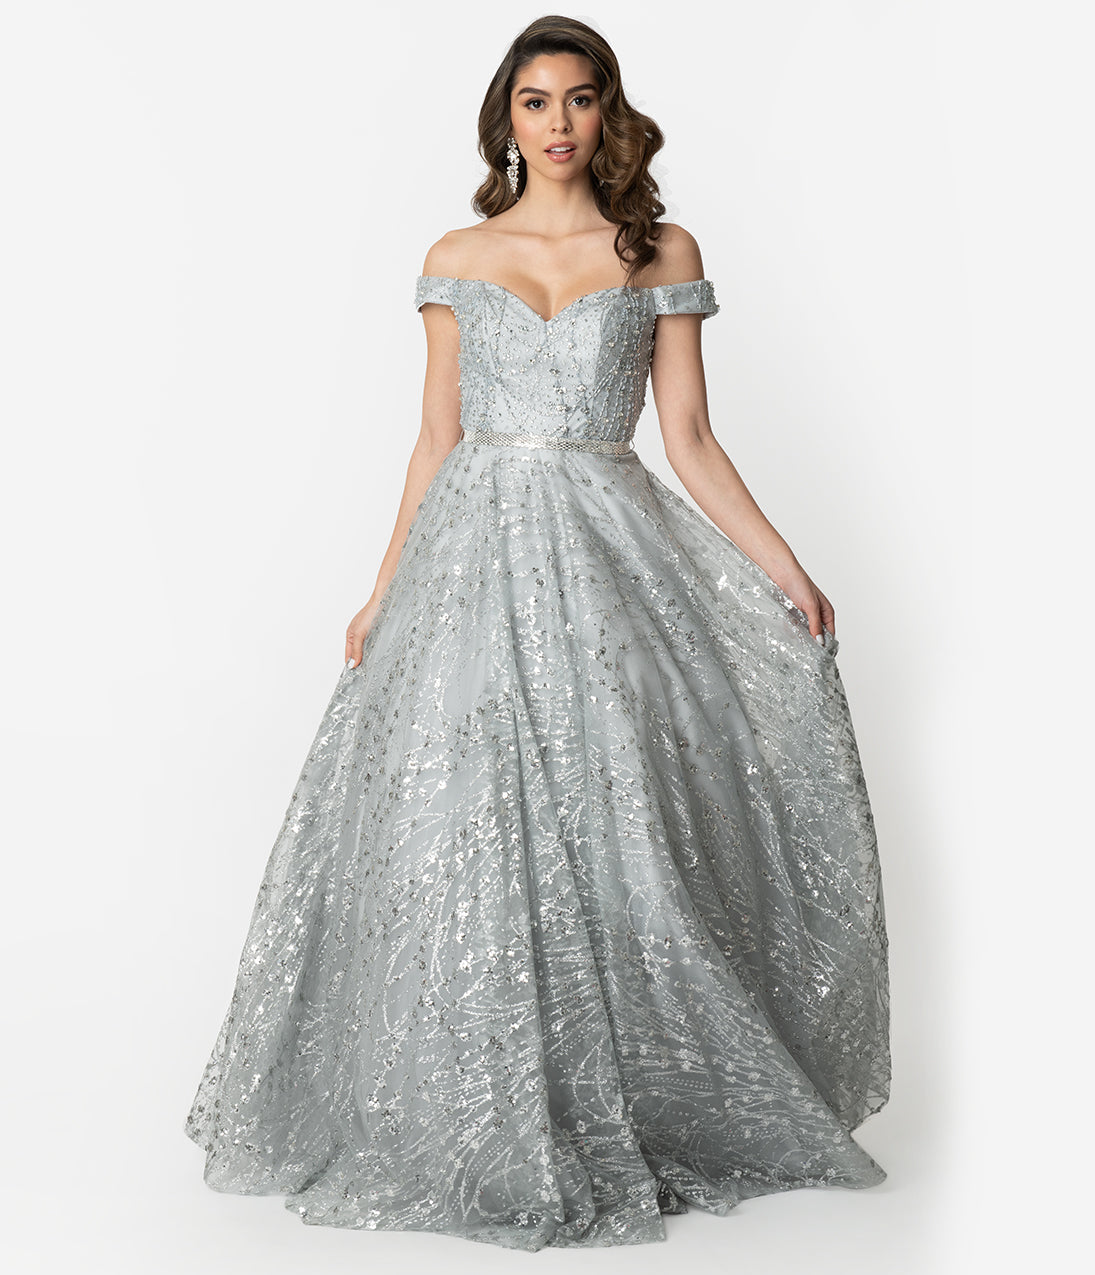 What Did Women Wear in the 1950s? 1950s Fashion Guide Silver Sparkle Embellished Off The Shoulder Ball Gown $220.00 AT vintagedancer.com